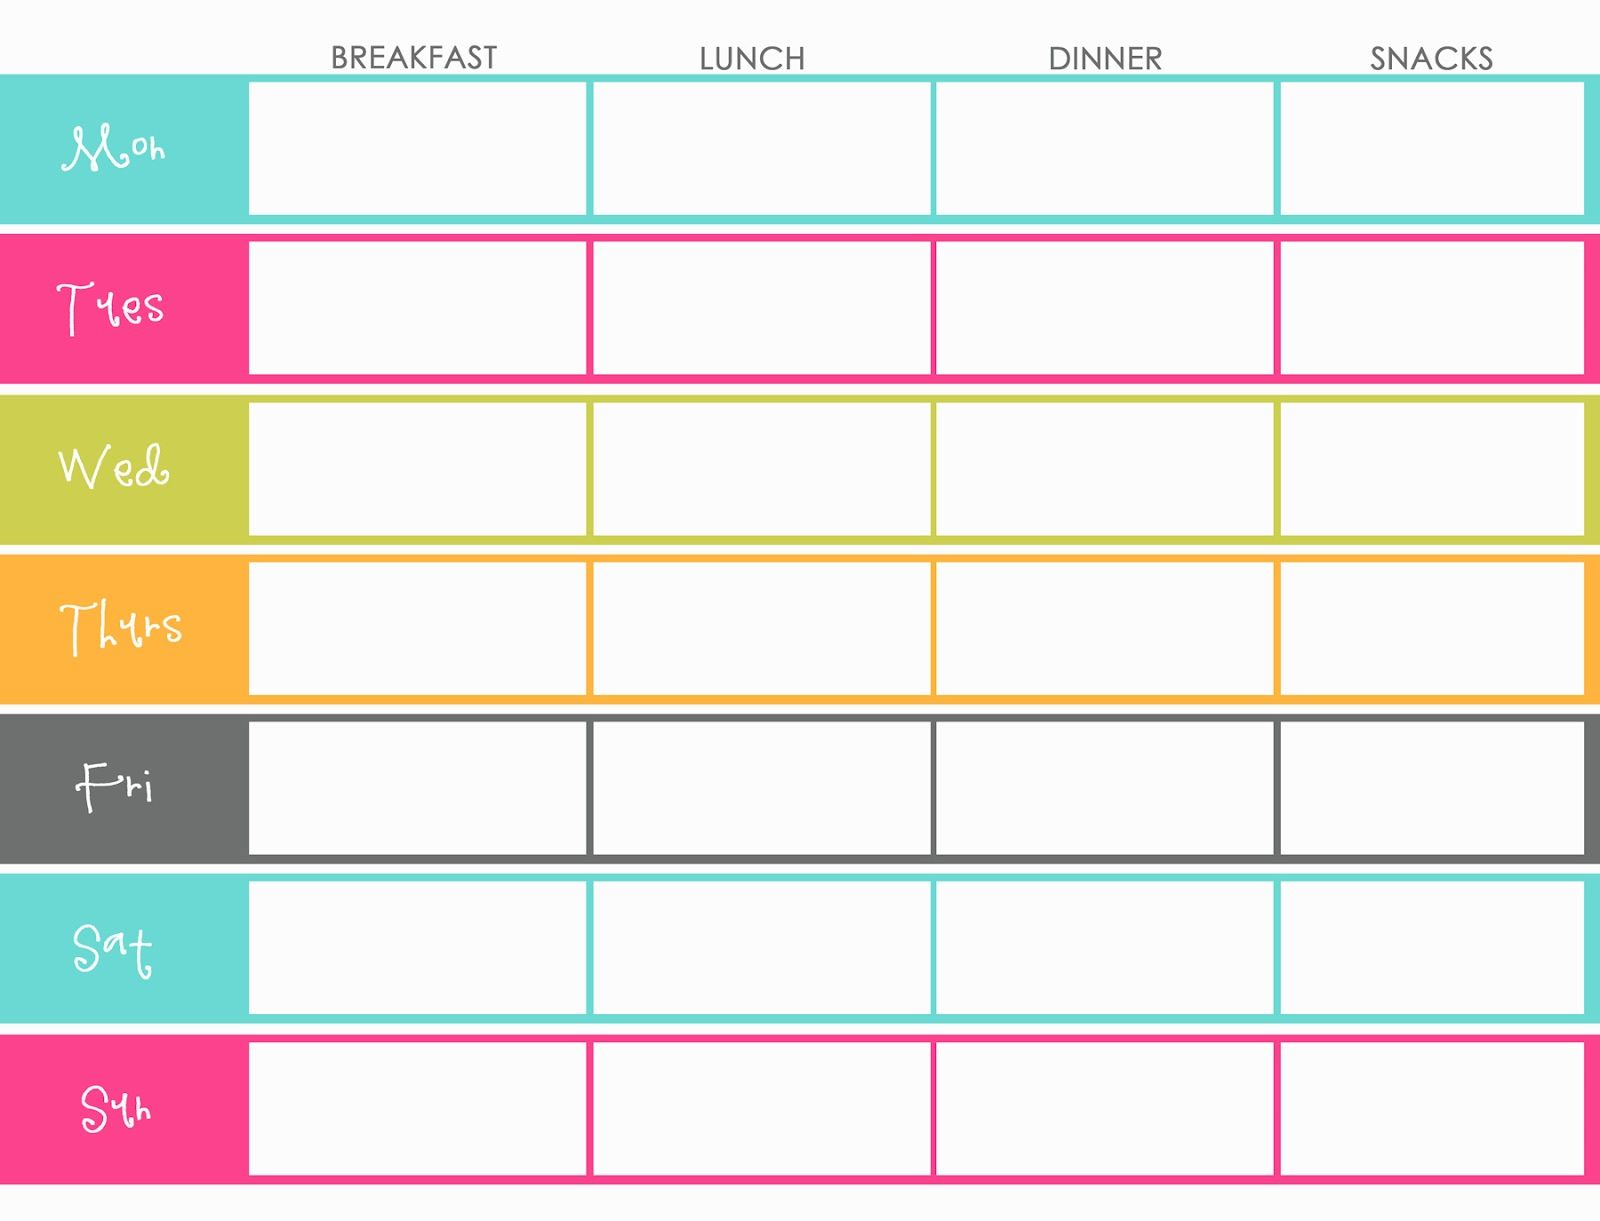 Little housewife hints and tips meal planning  pinte also rh pinterest